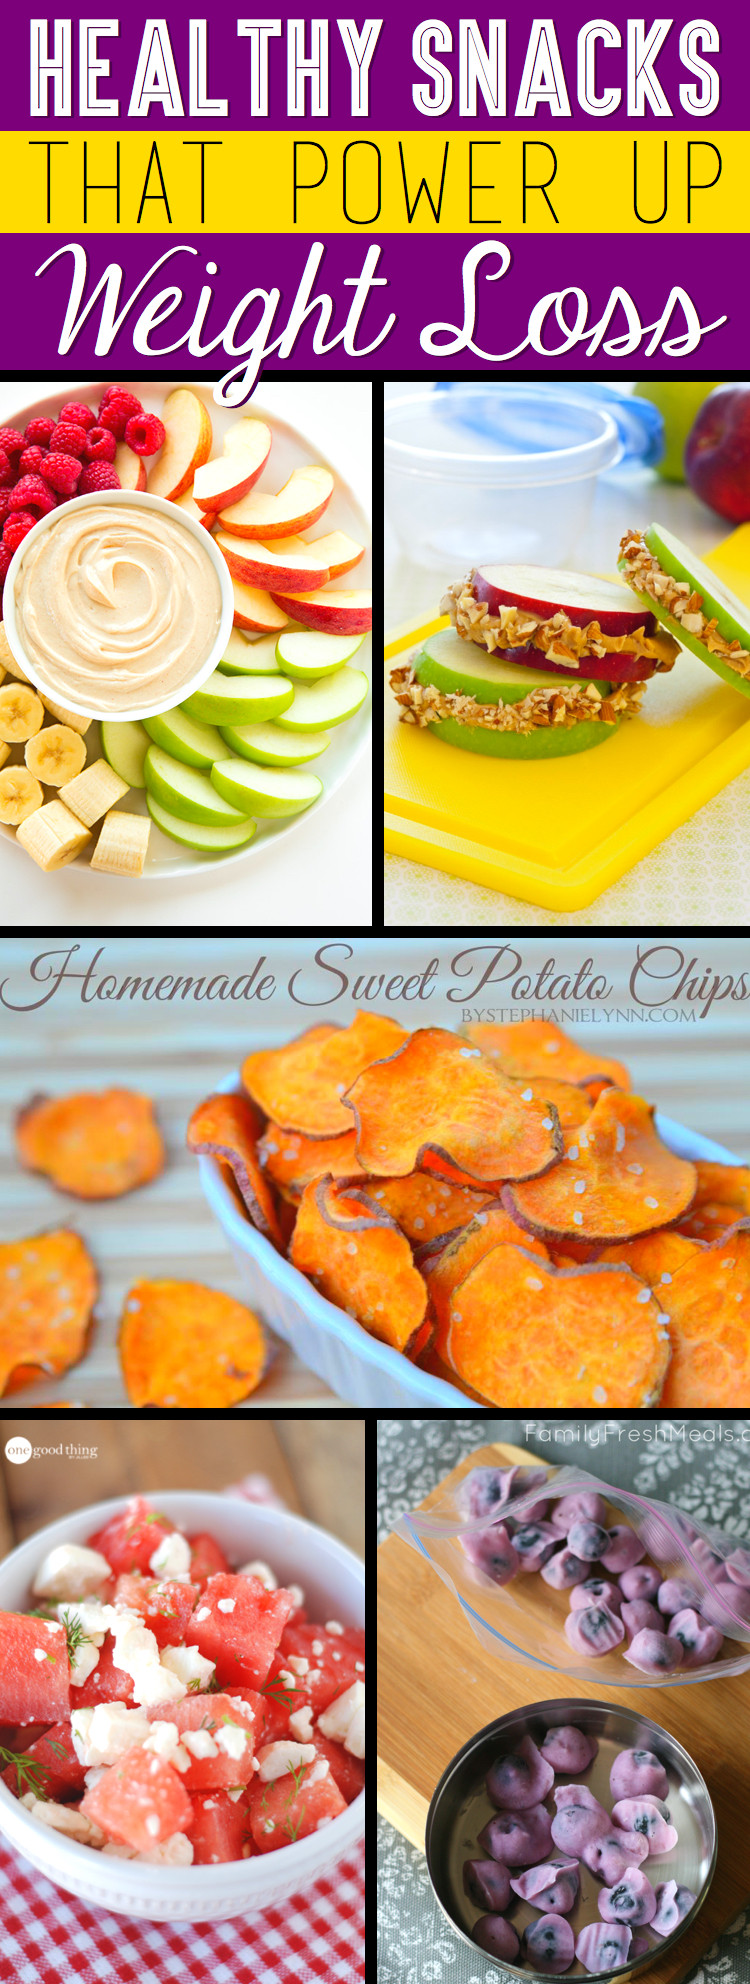 Healthy Snacks For Weight Loss  Diy Easy Snacks To Make At Home Diy Do It Your Self